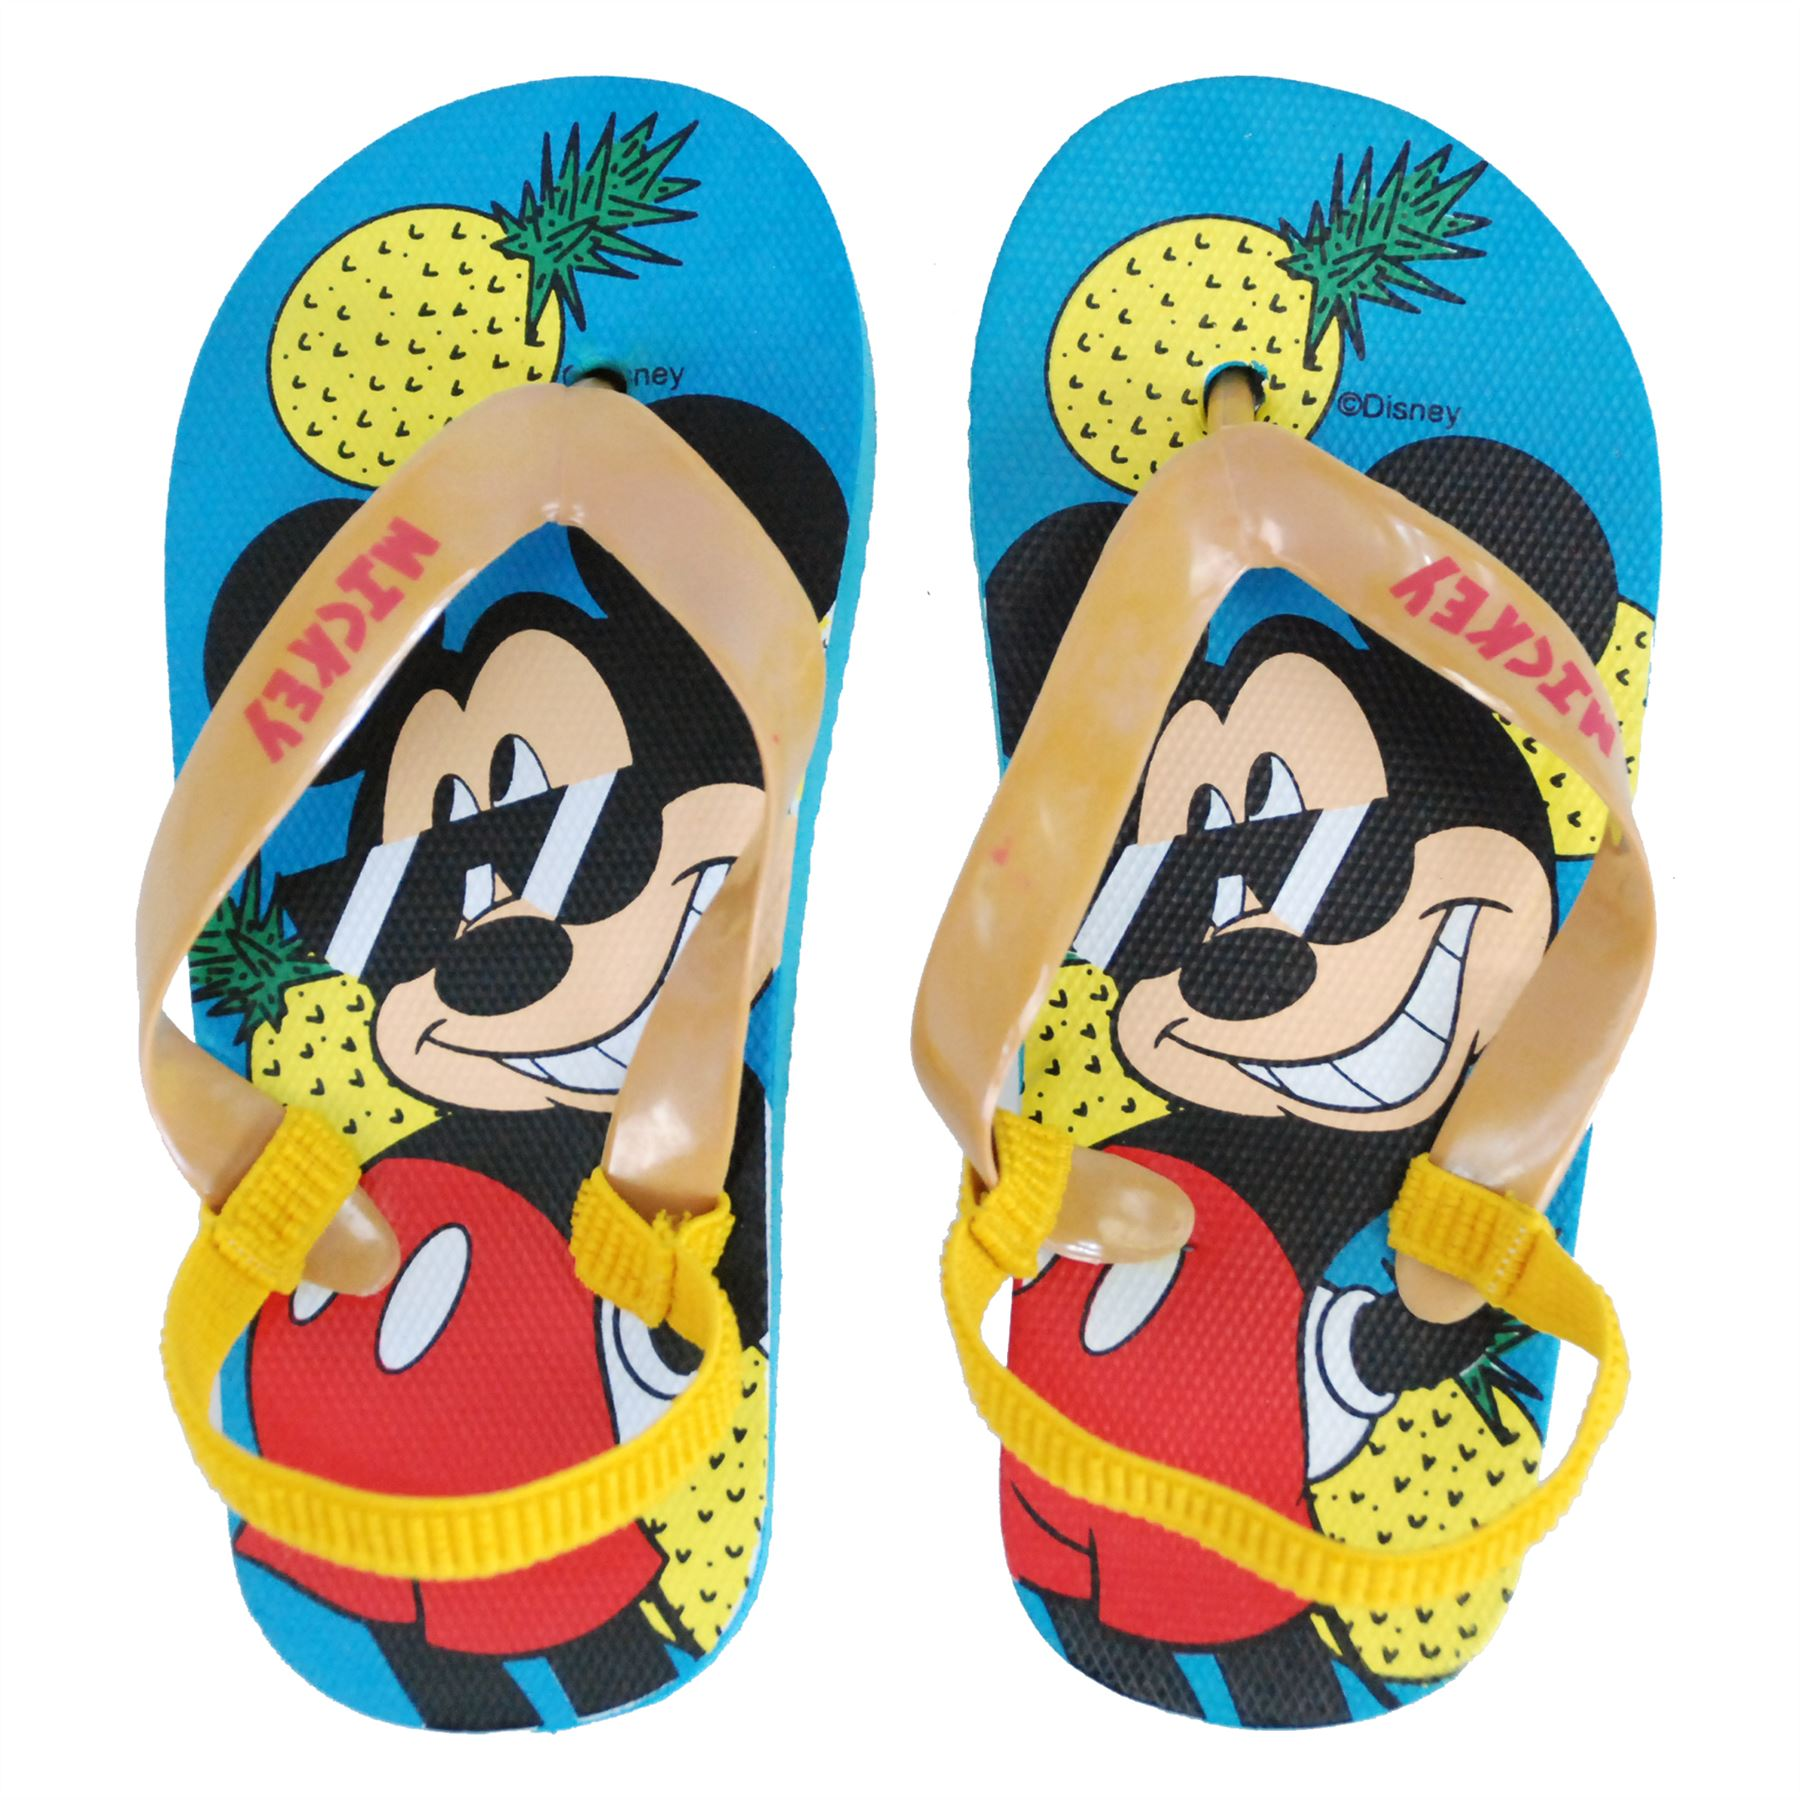 95c5b858f9ac Disney® Mickey Mouse Kids Flip Flops Sandals Pool Beach UK Sizes ...